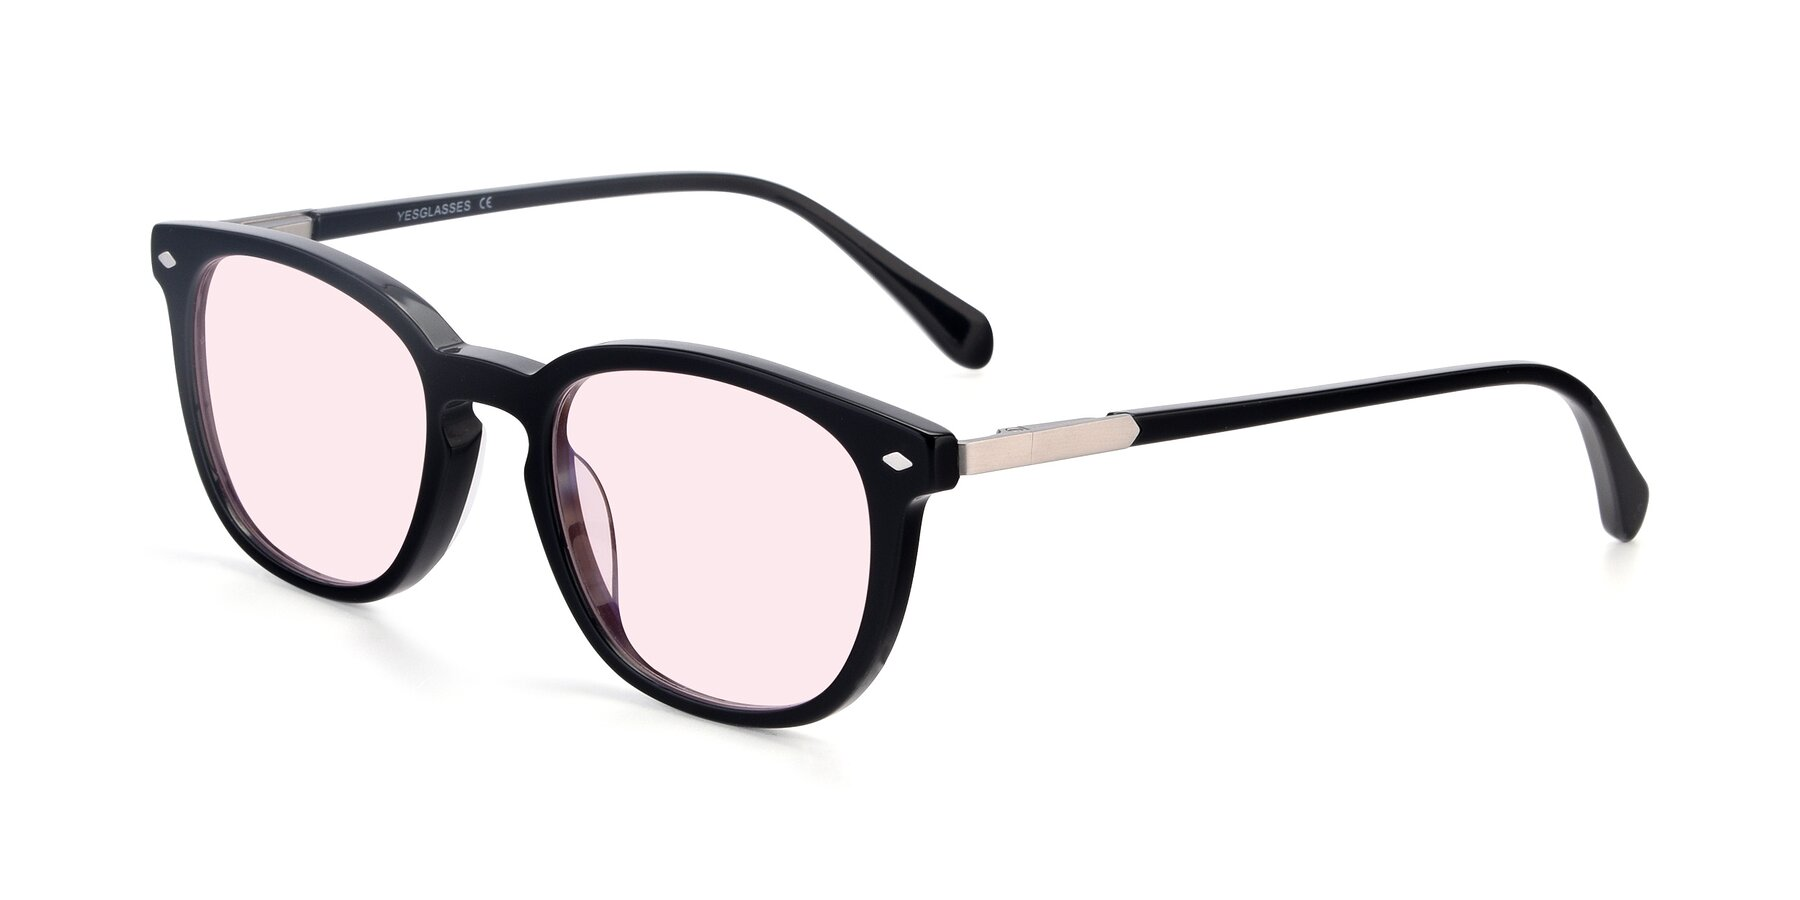 Angle of 17578 in Black with Light Pink Tinted Lenses